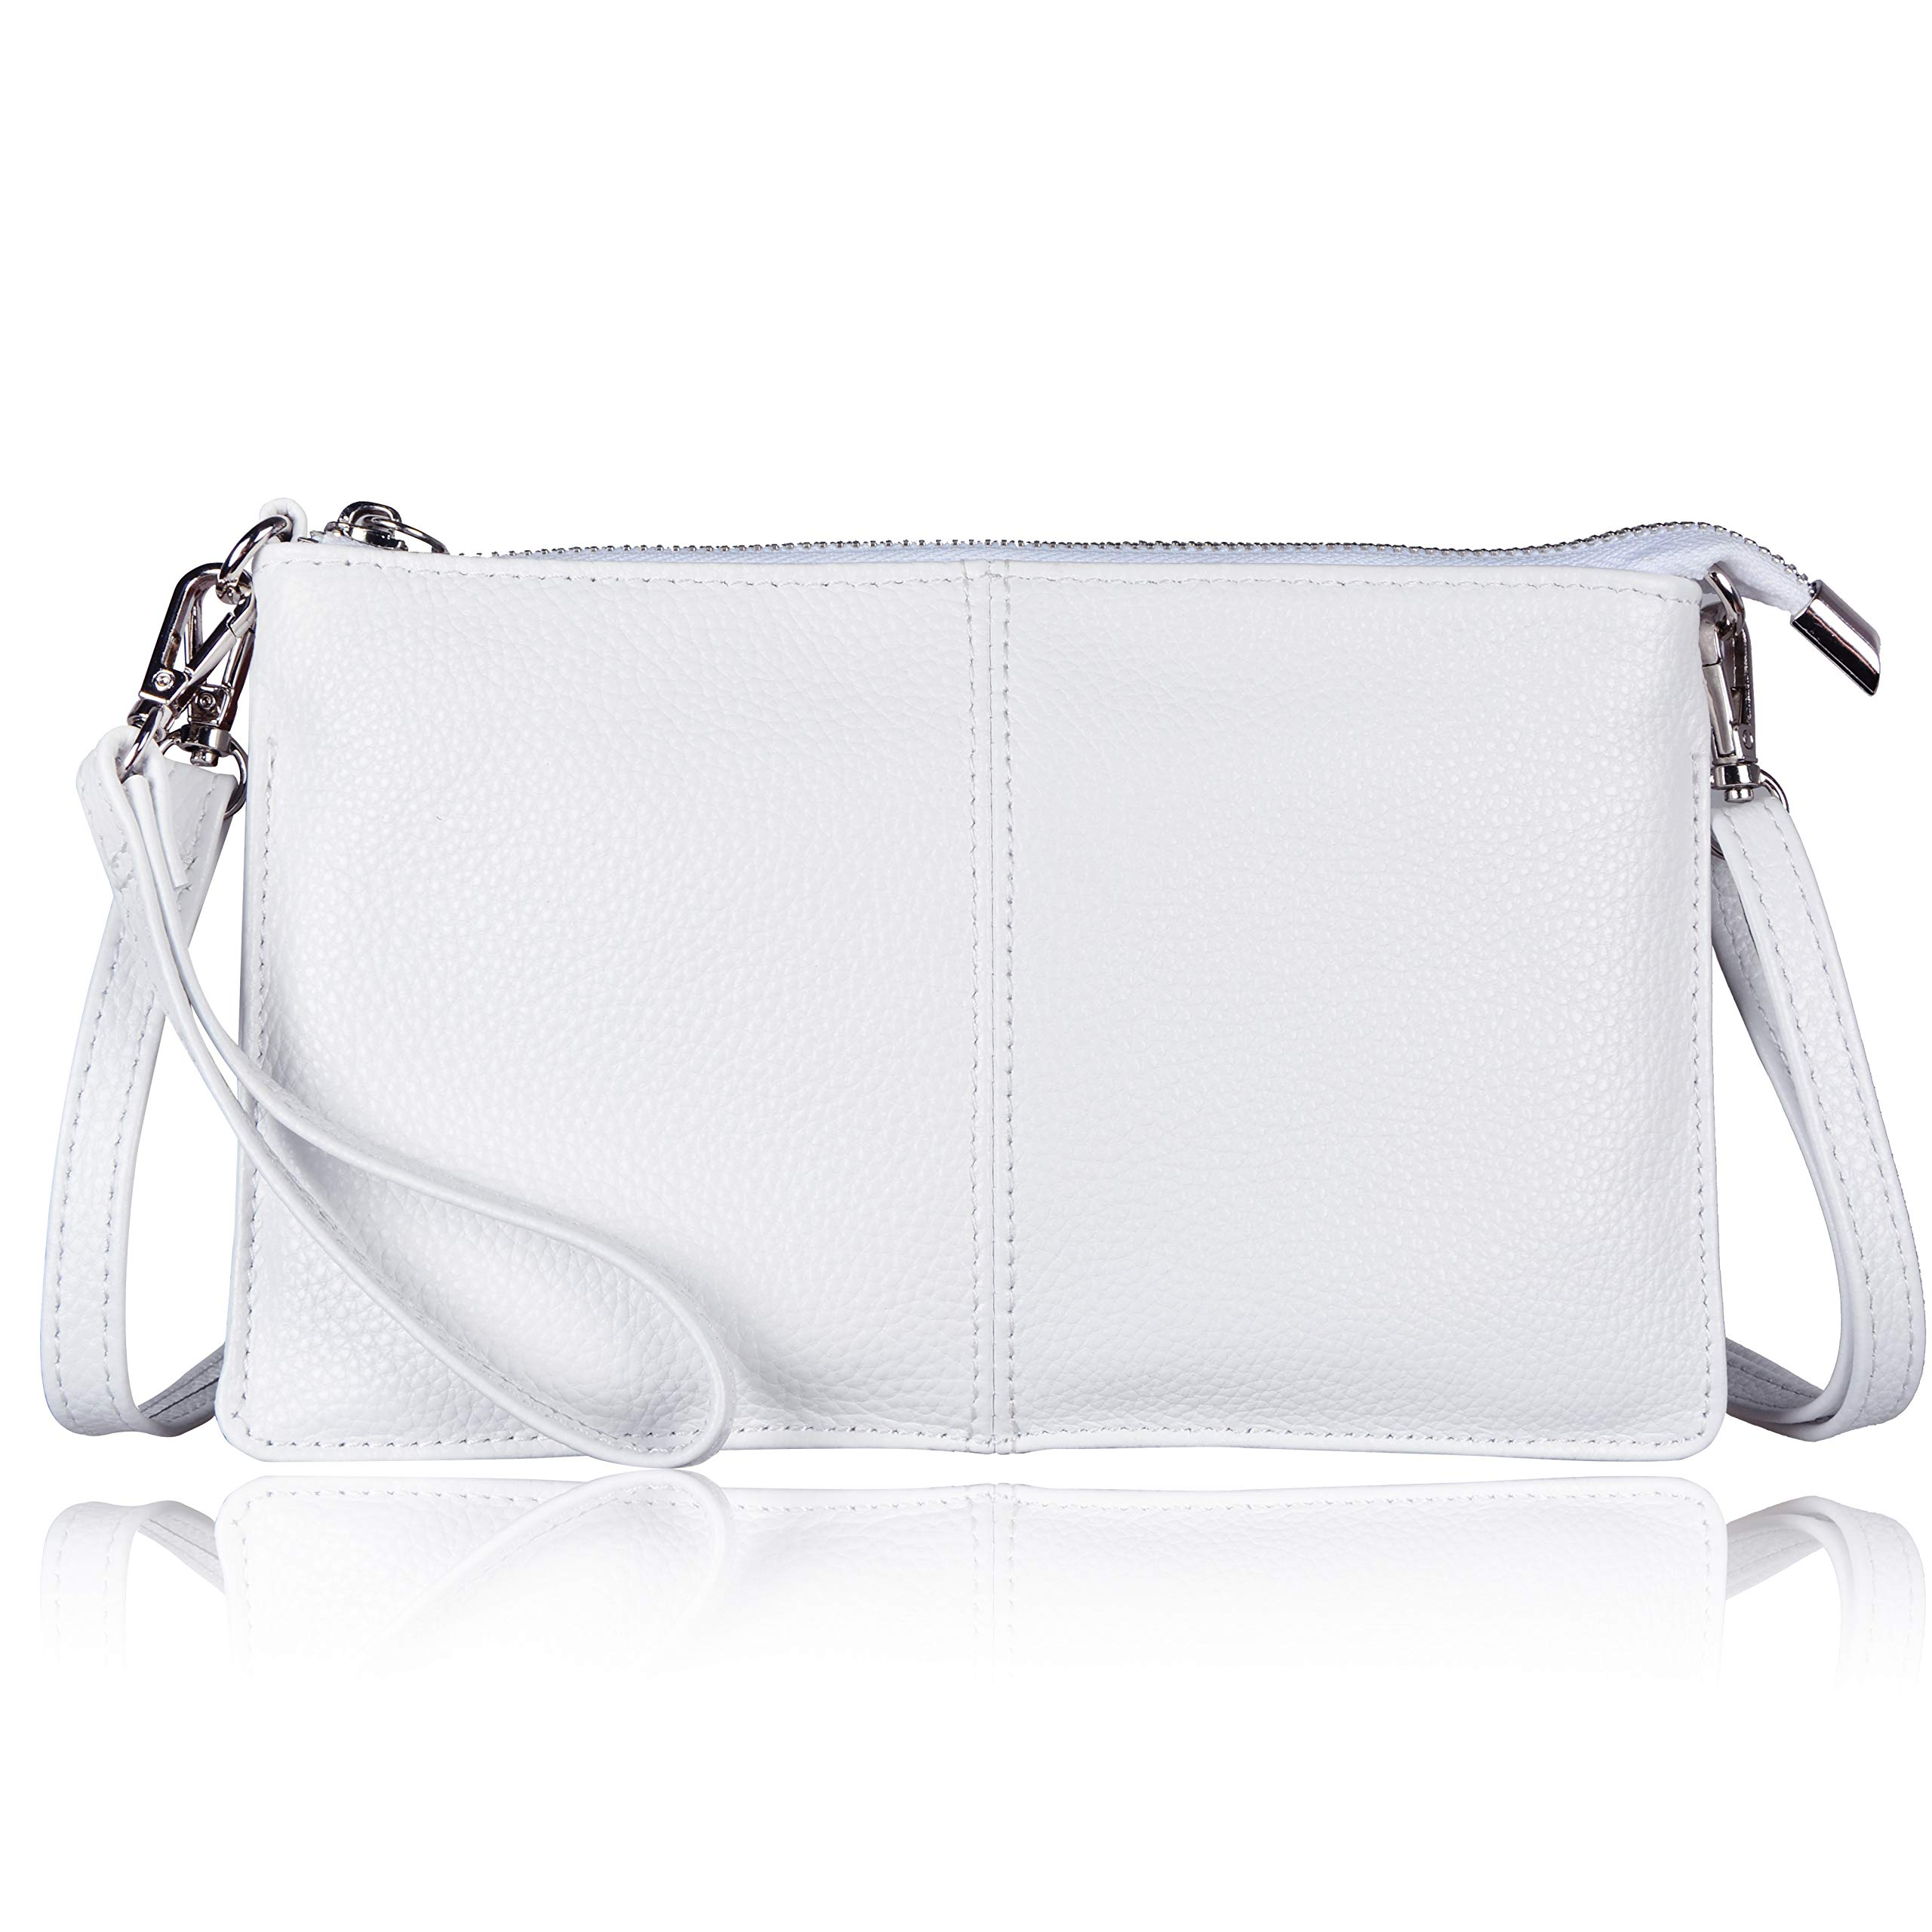 Befen Women's Leather Wristlet Clutch Phone Wallet Mini Crossbody Purse Bag with Card Slots (White)